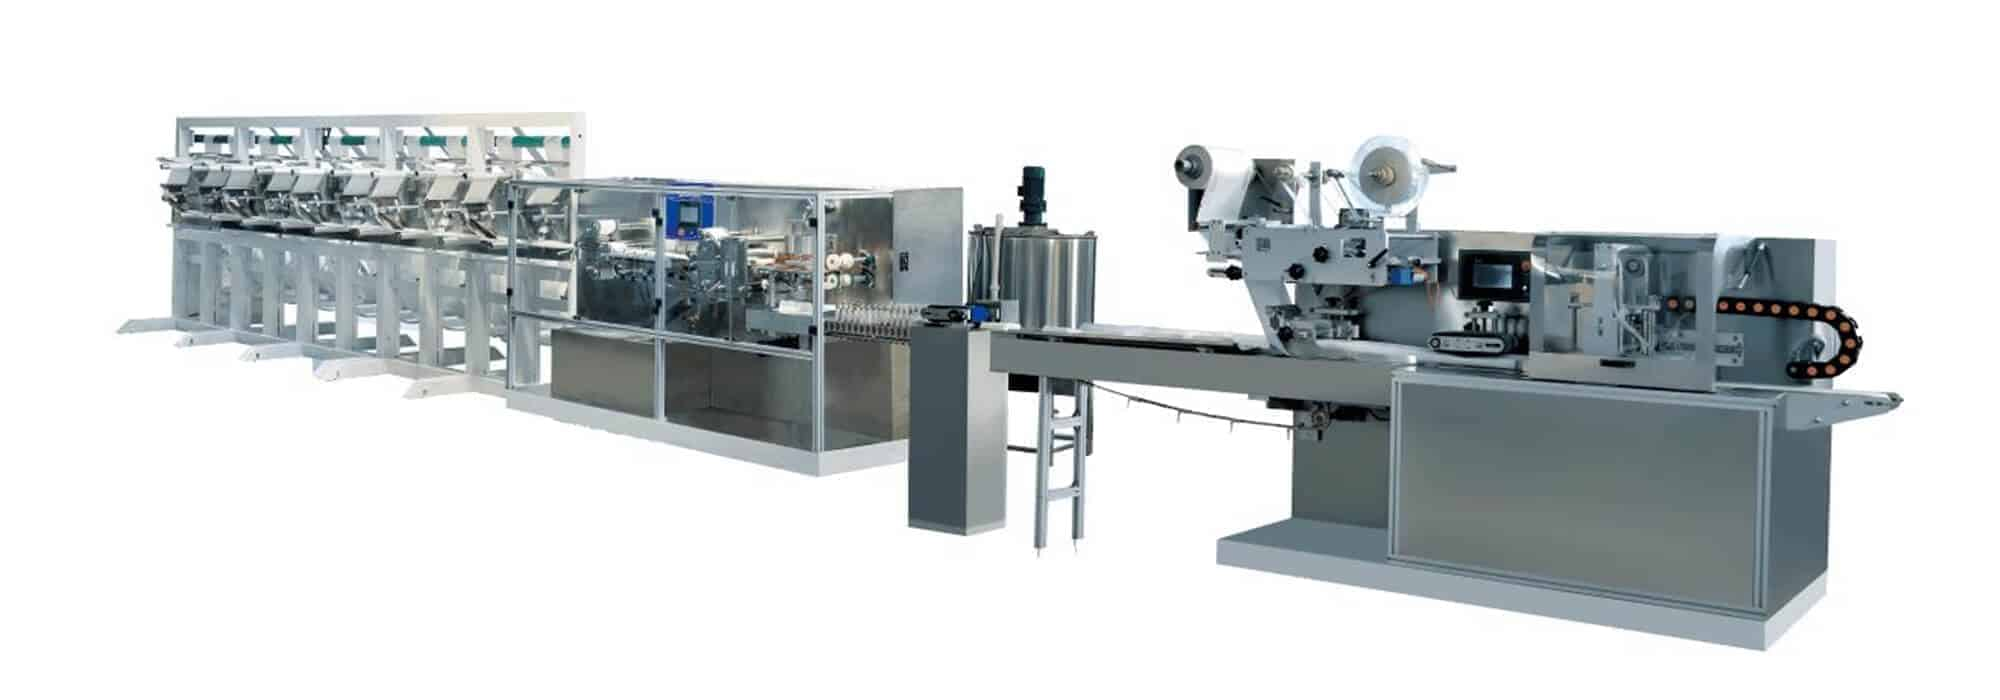 DH 12F Automatic wet wipes production line 1 - DH-12F Automatic wet wipes production line (30-120pcs/pack)